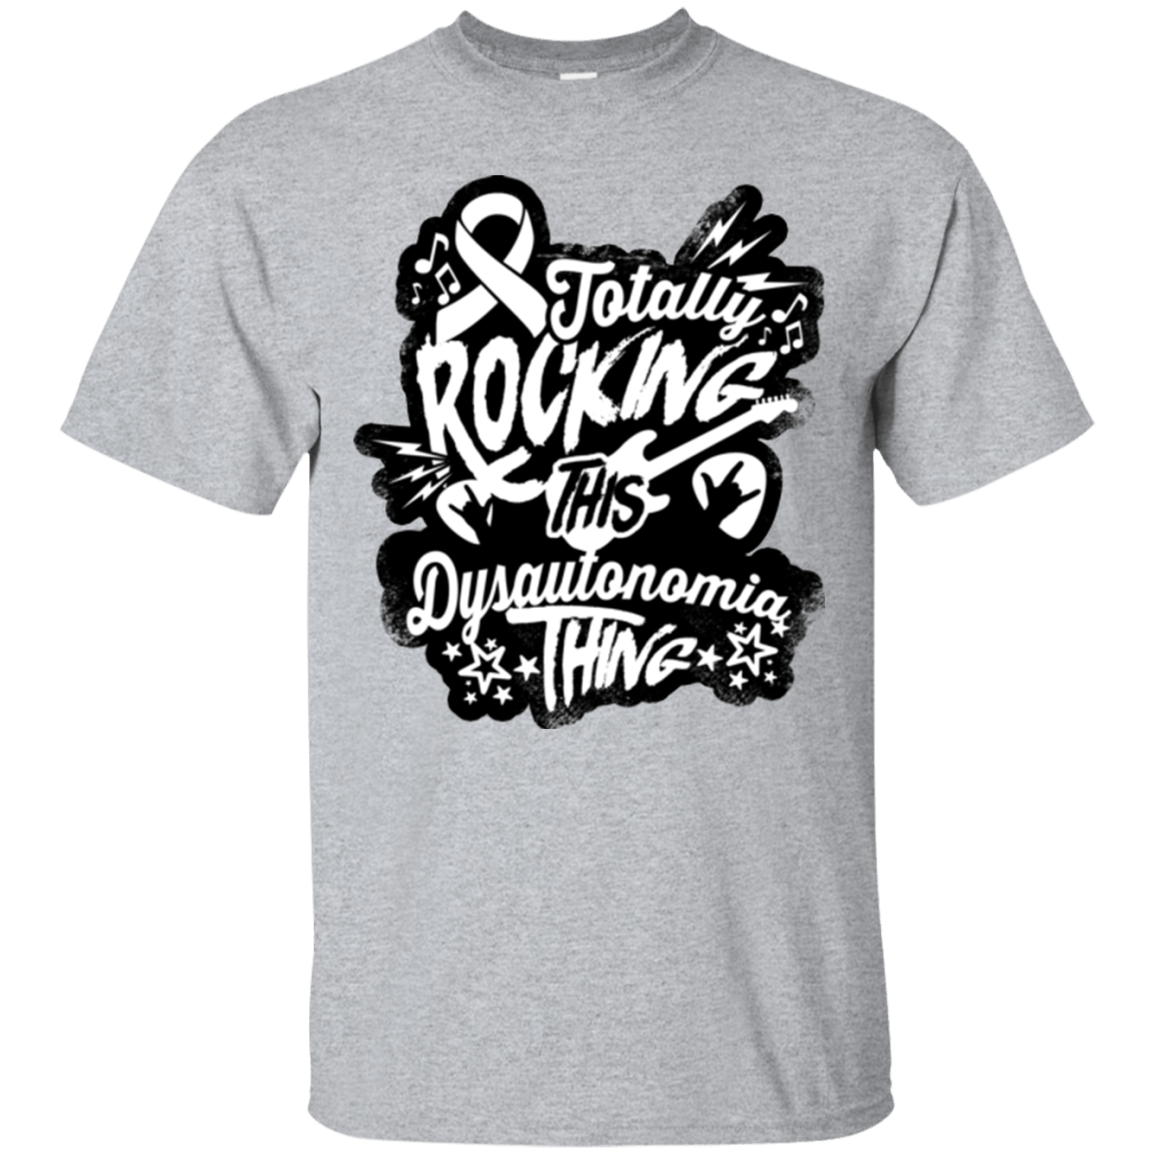 Rocking Dysautonomia Unisex Shirt - The Unchargeables